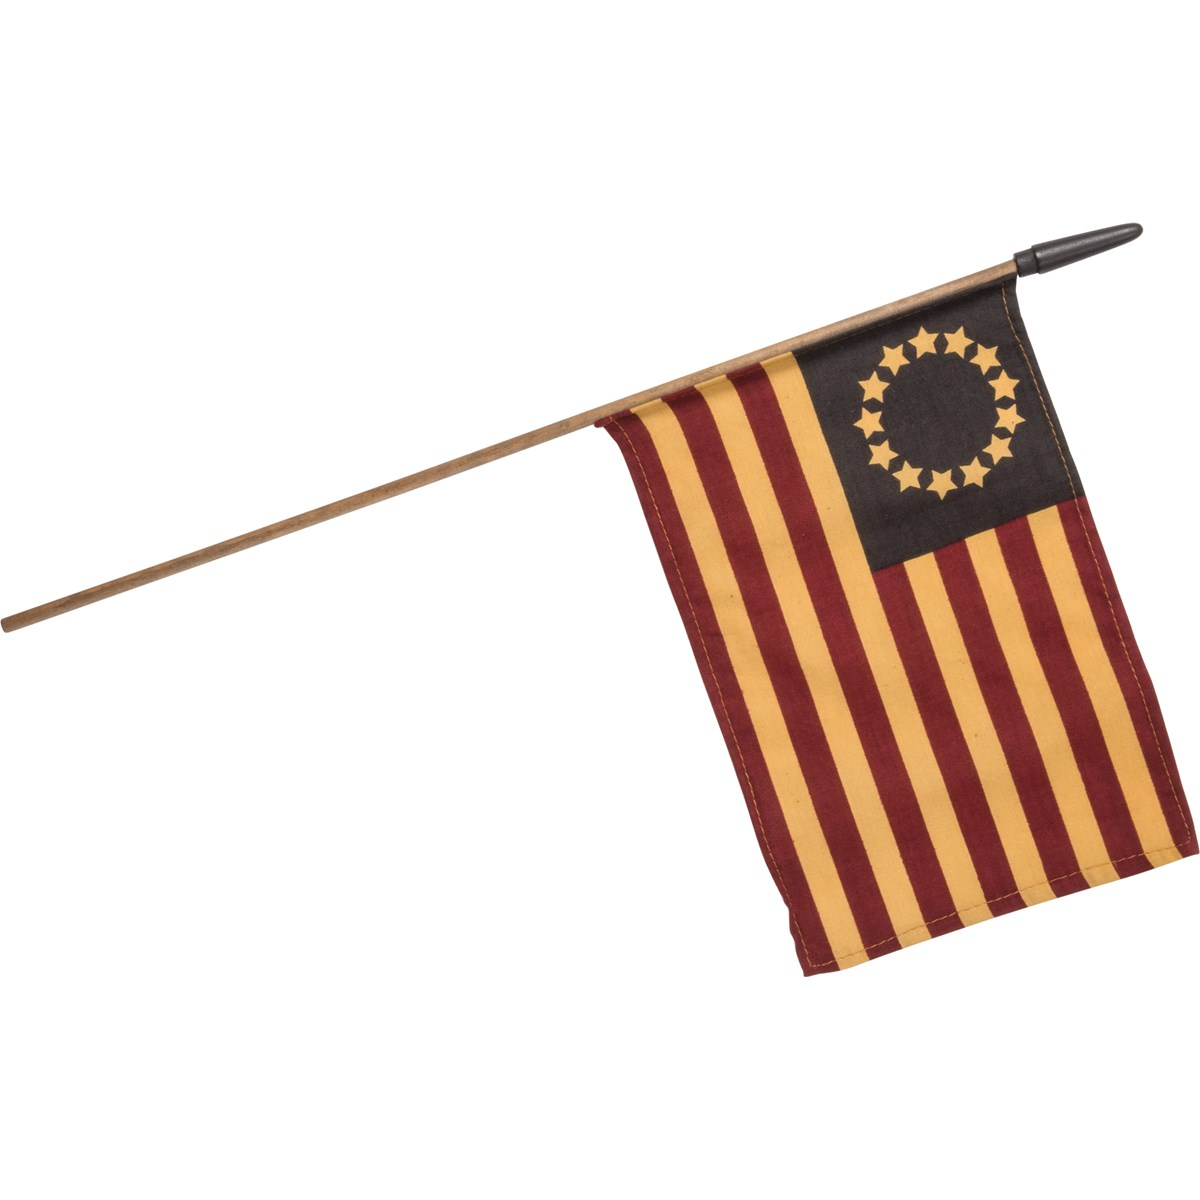 "Primitive Betsy Ross Flag - 10.50"" x 7"", Stick: 18.25"" - Fabric, Wood"